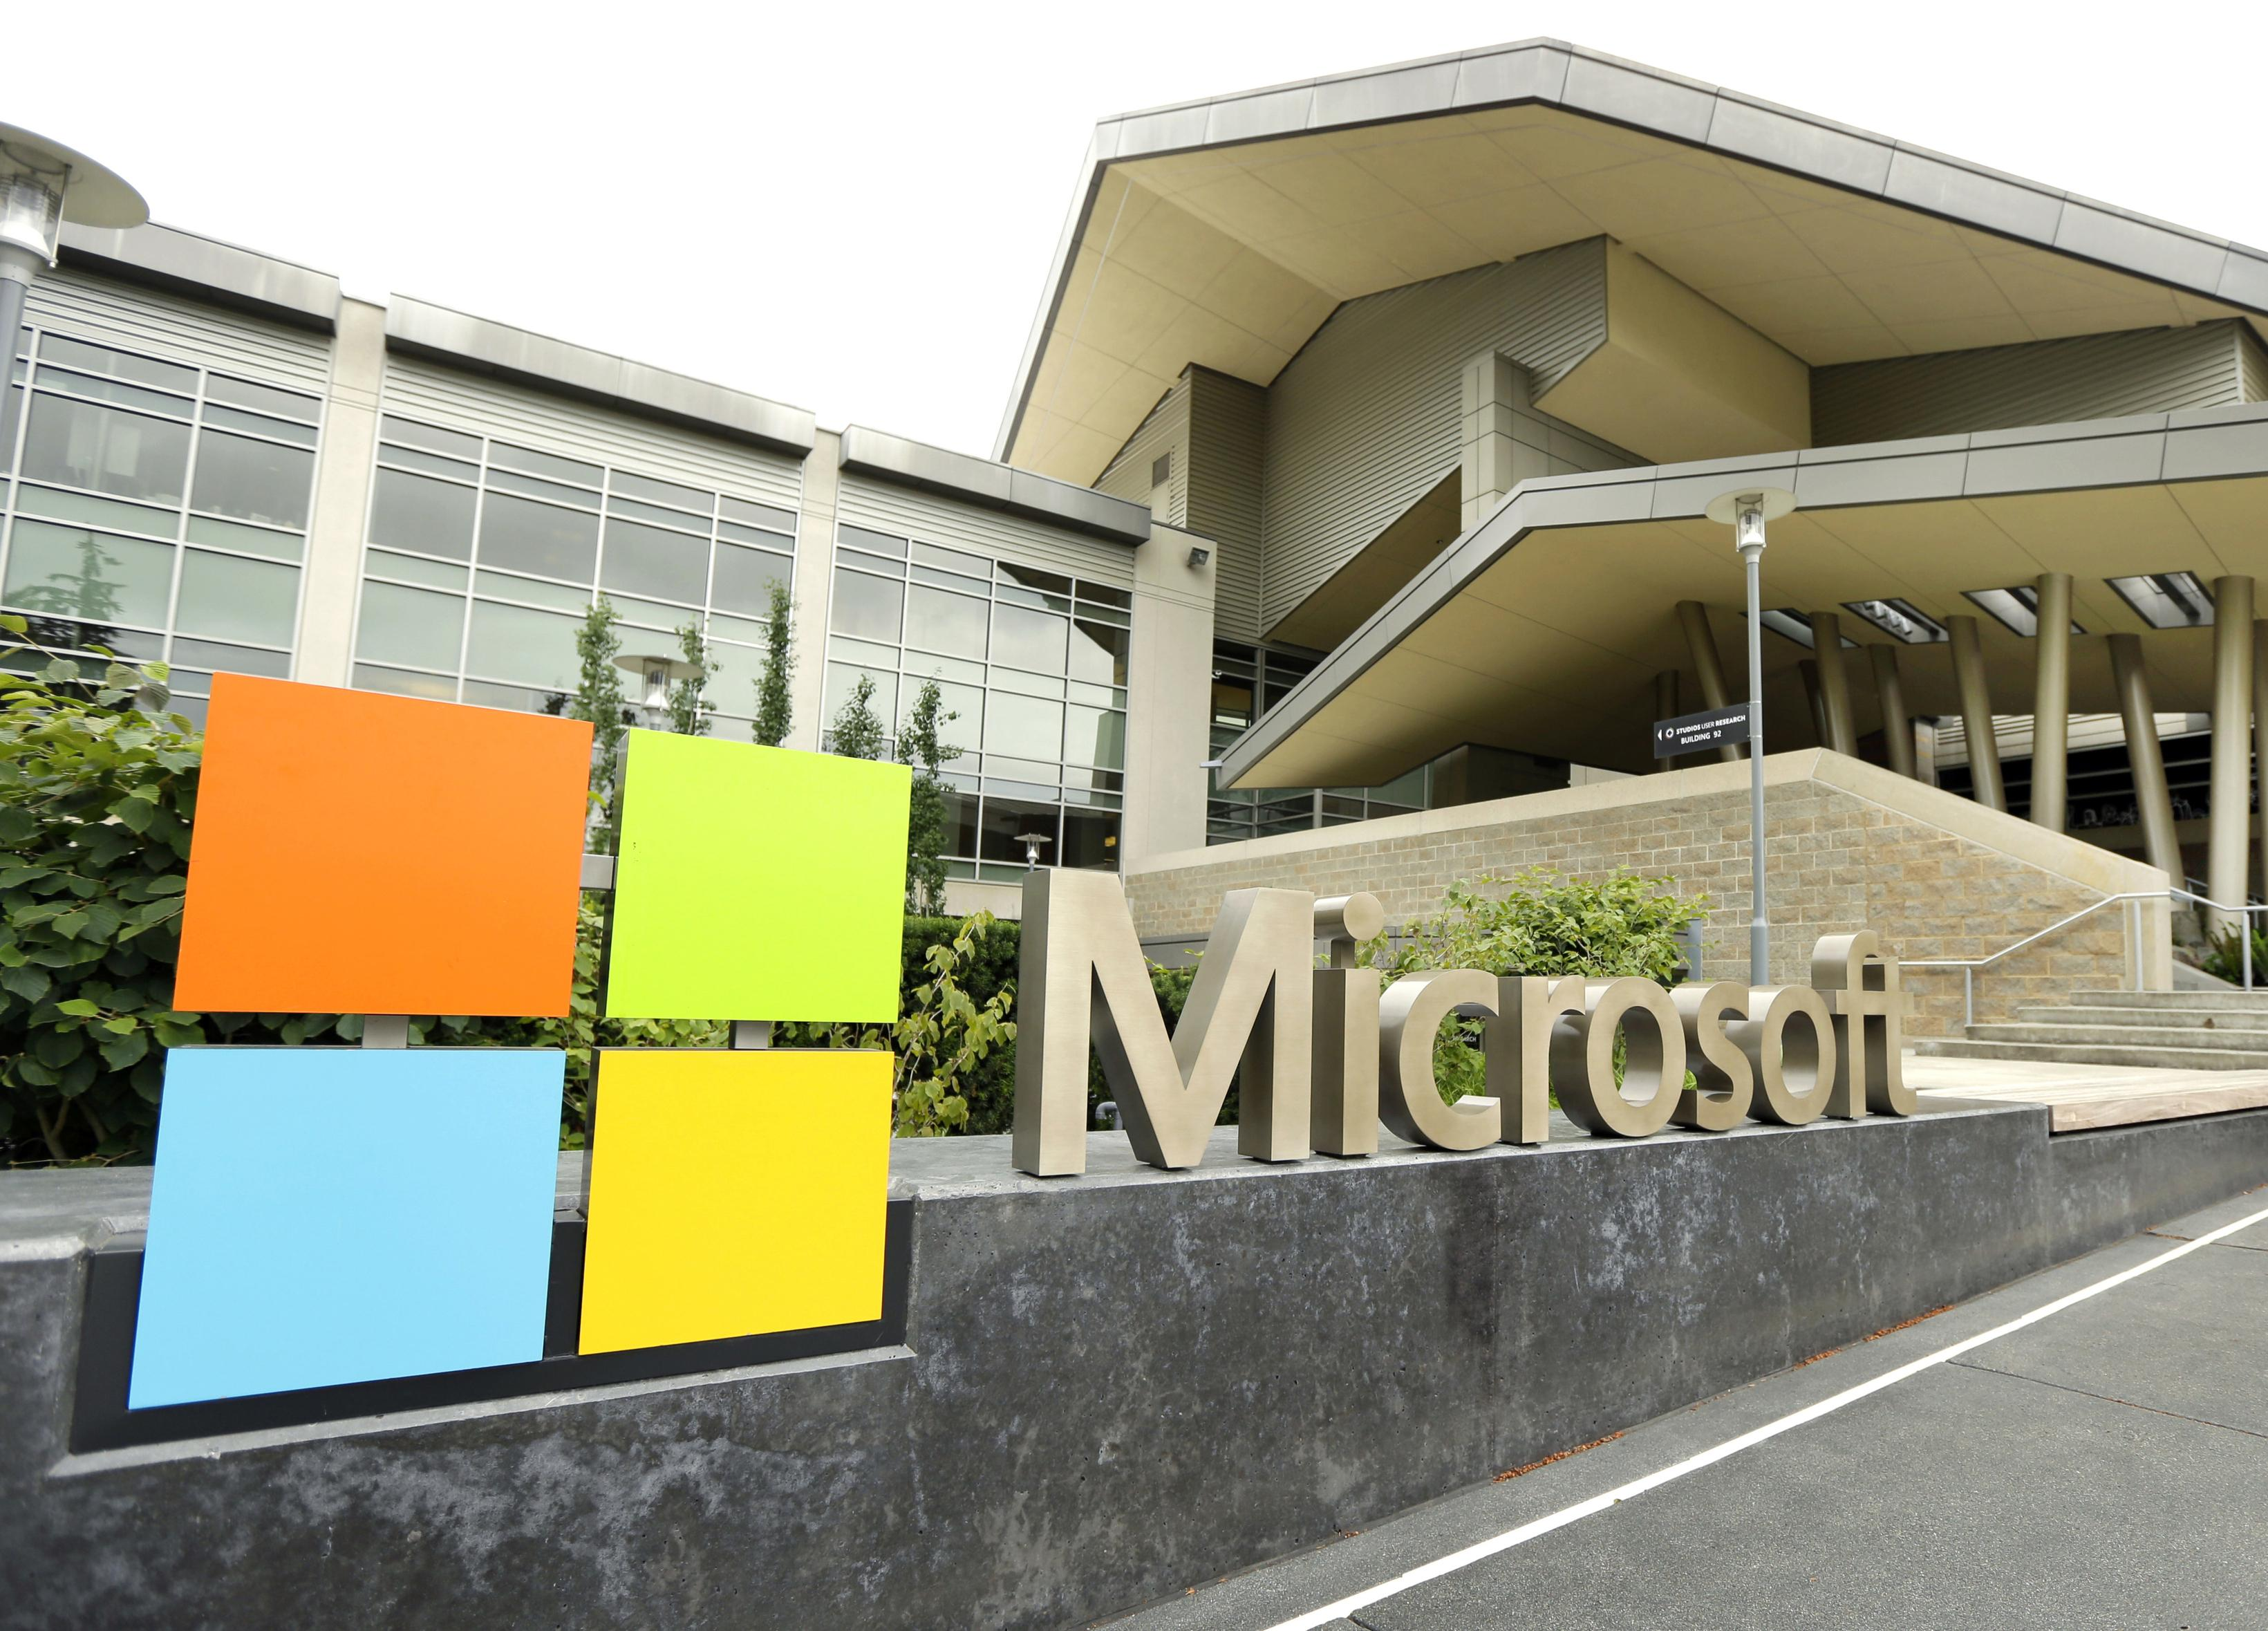 Iranian hacker group targeted U.S. presidential candidate, Microsoft s